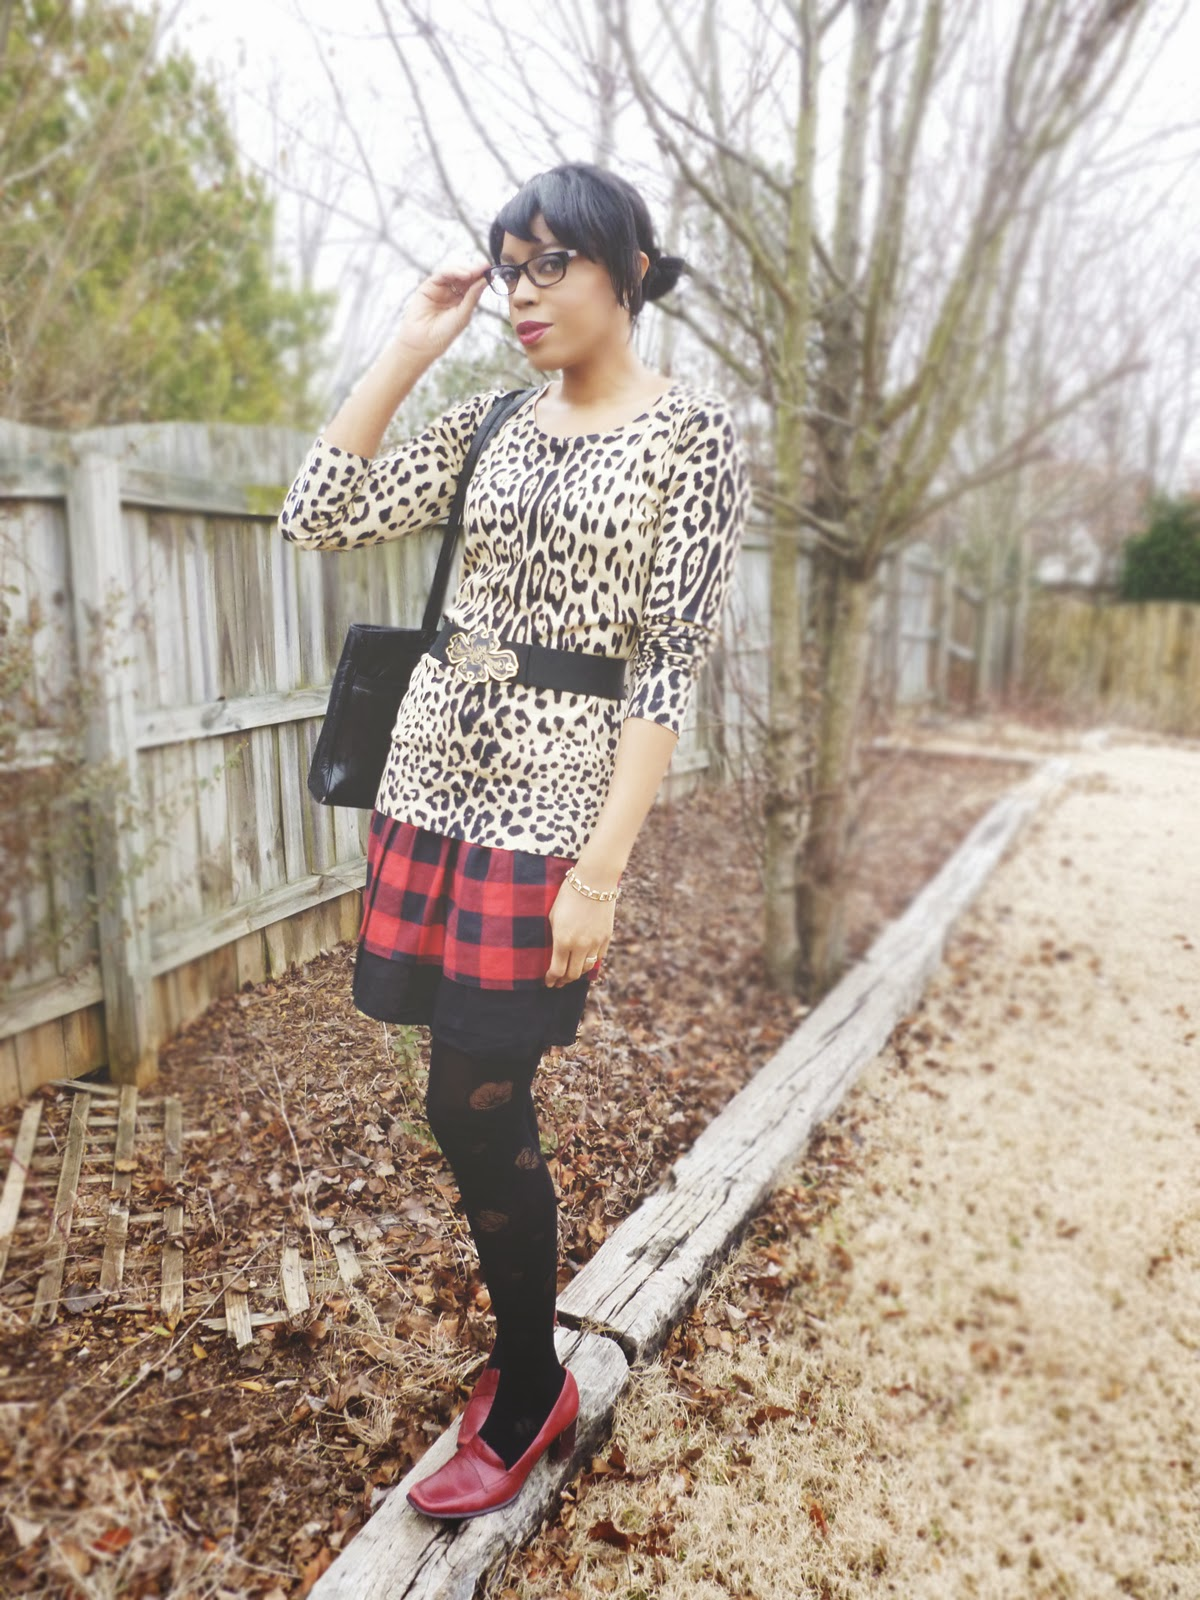 Winter fashion tartan how to wear leopard